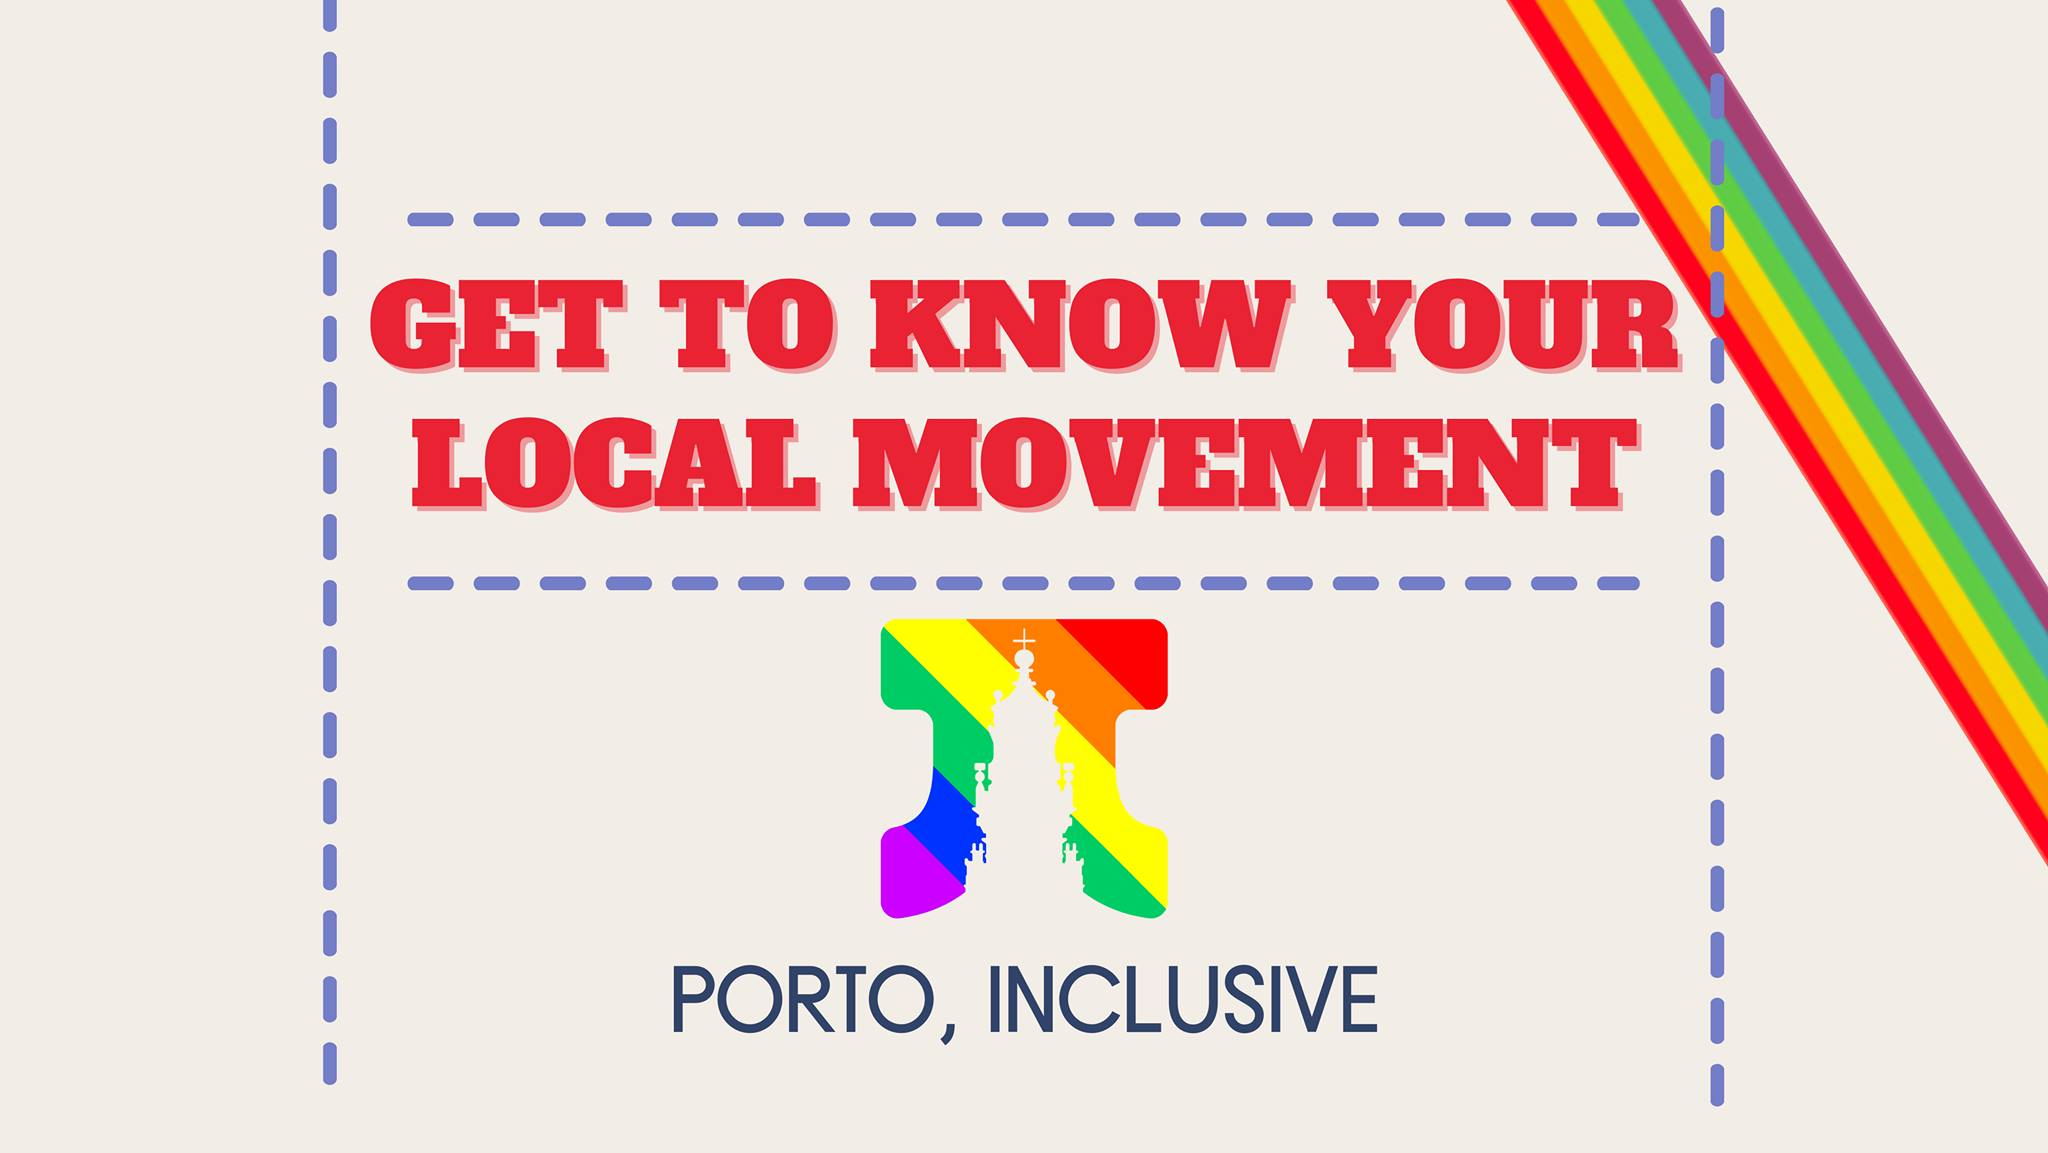 Get to know your local movement: Porto, Inclusive